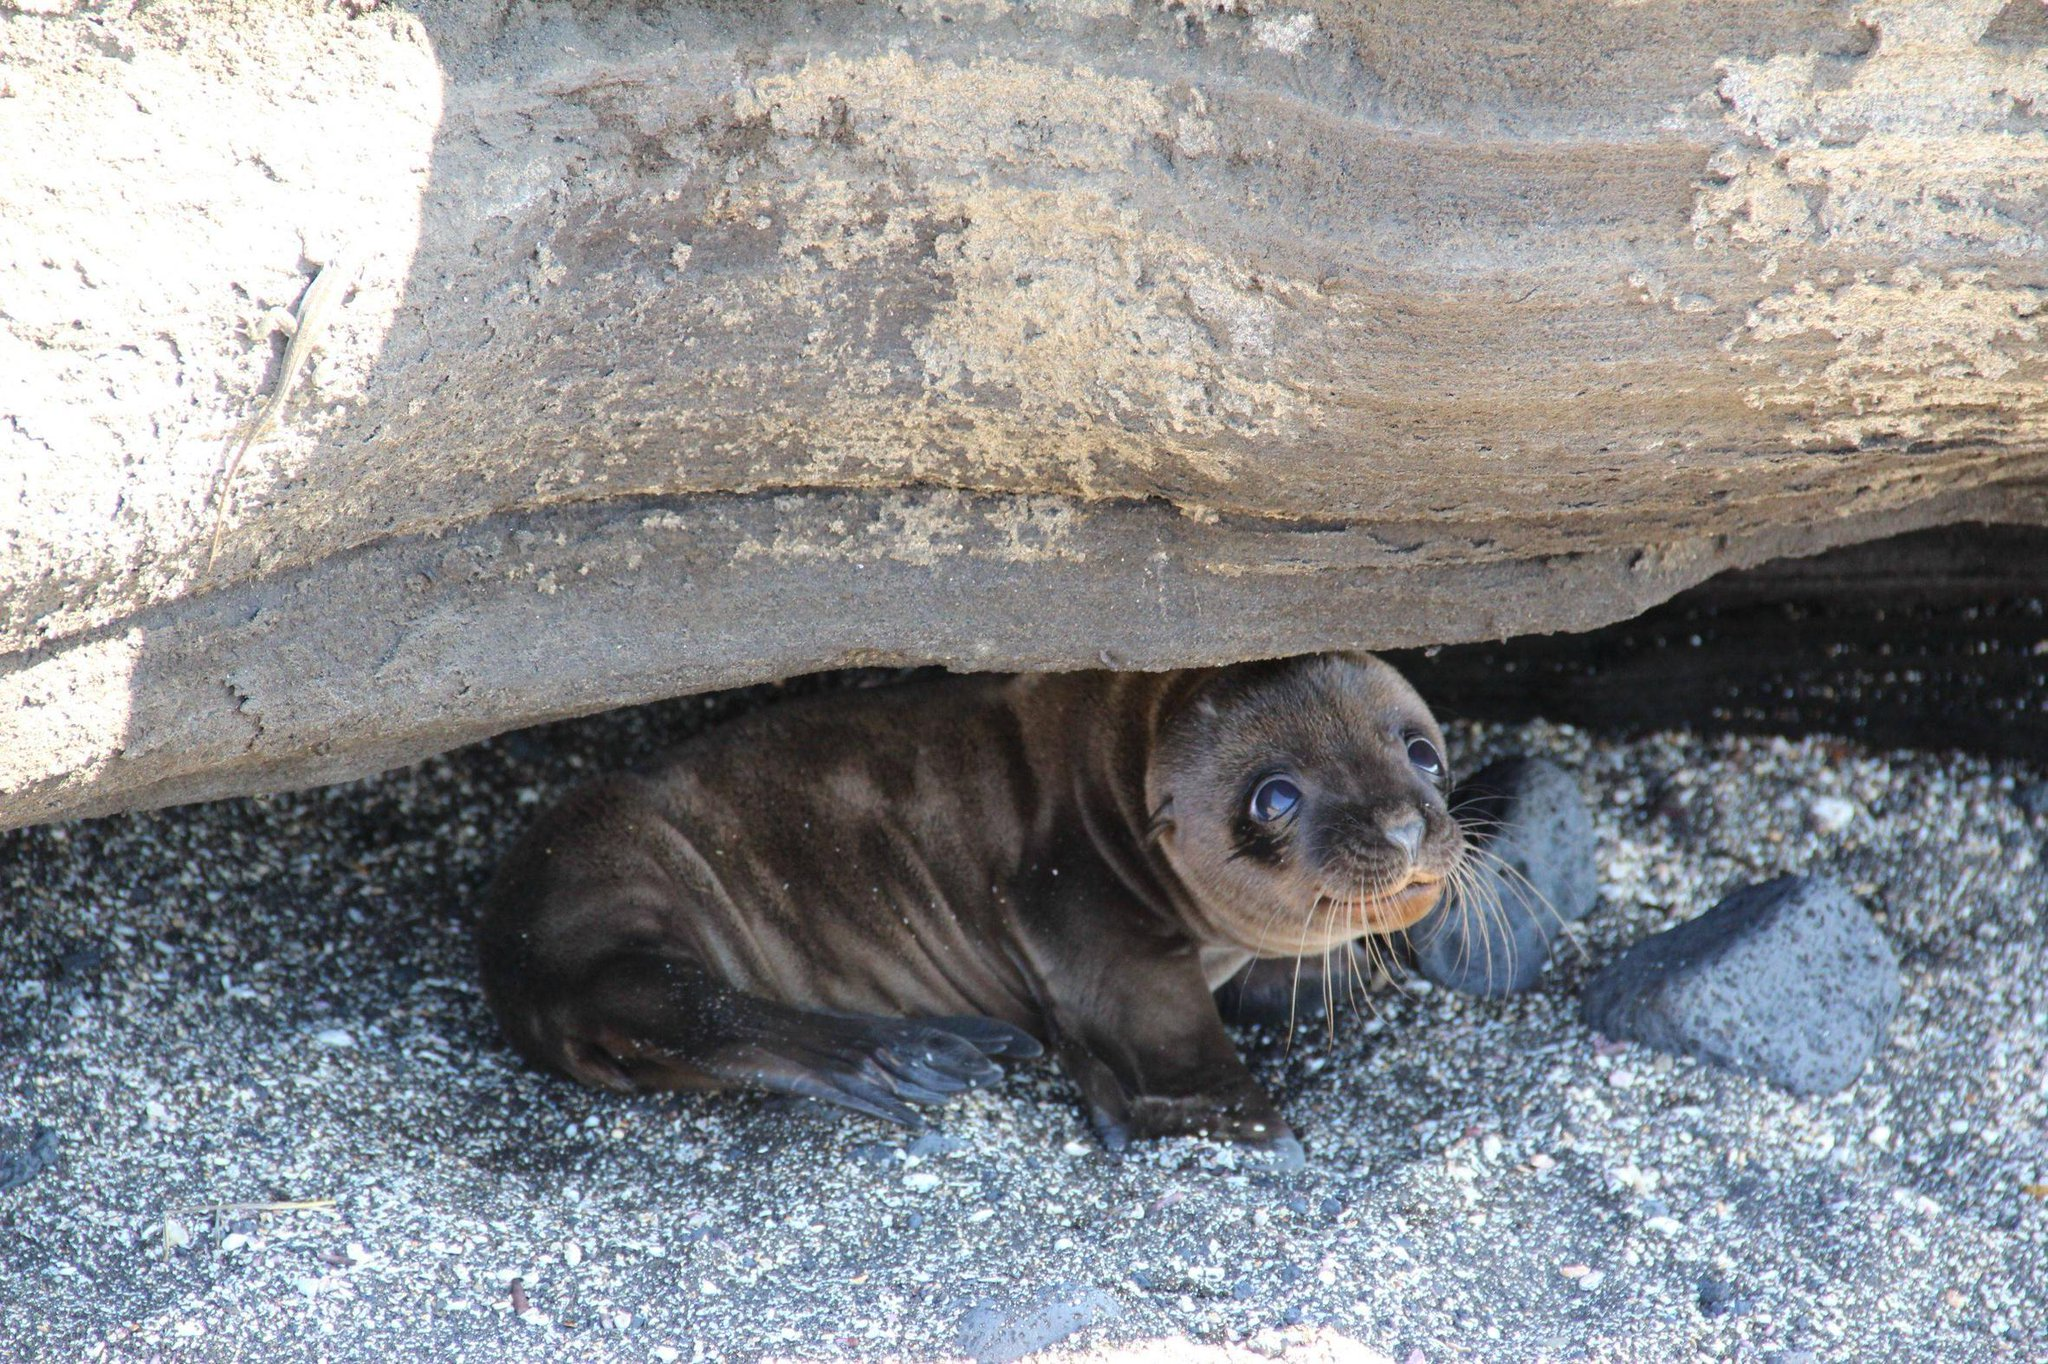 Seal pup, hiding under a rock. http://t.co/xptCfDEcAV